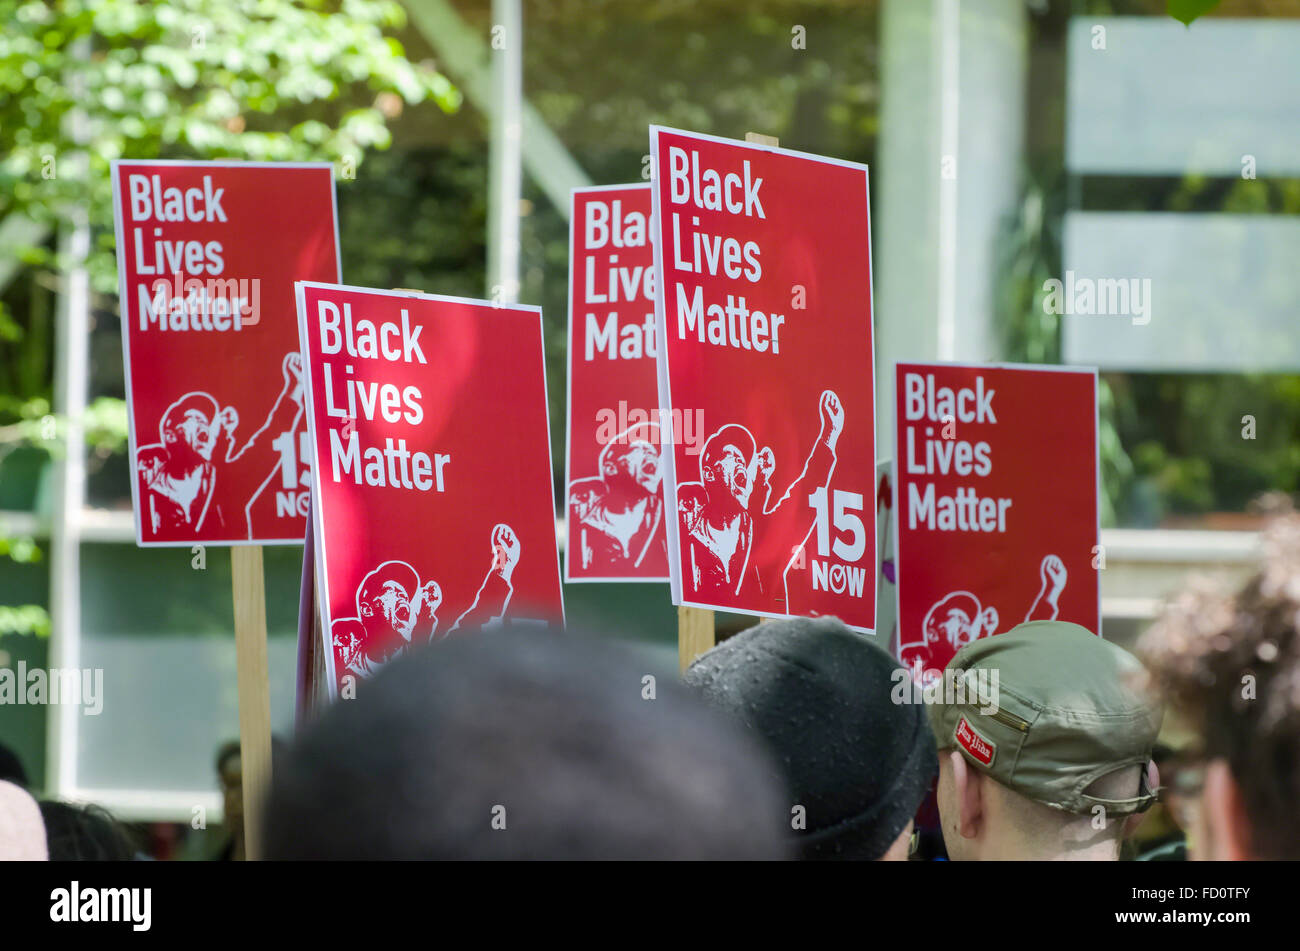 Signs saying Black Lives Matter are carried by demonstrators at a 2015 Don't Shoot rally in Portland, Oregon - Stock Image